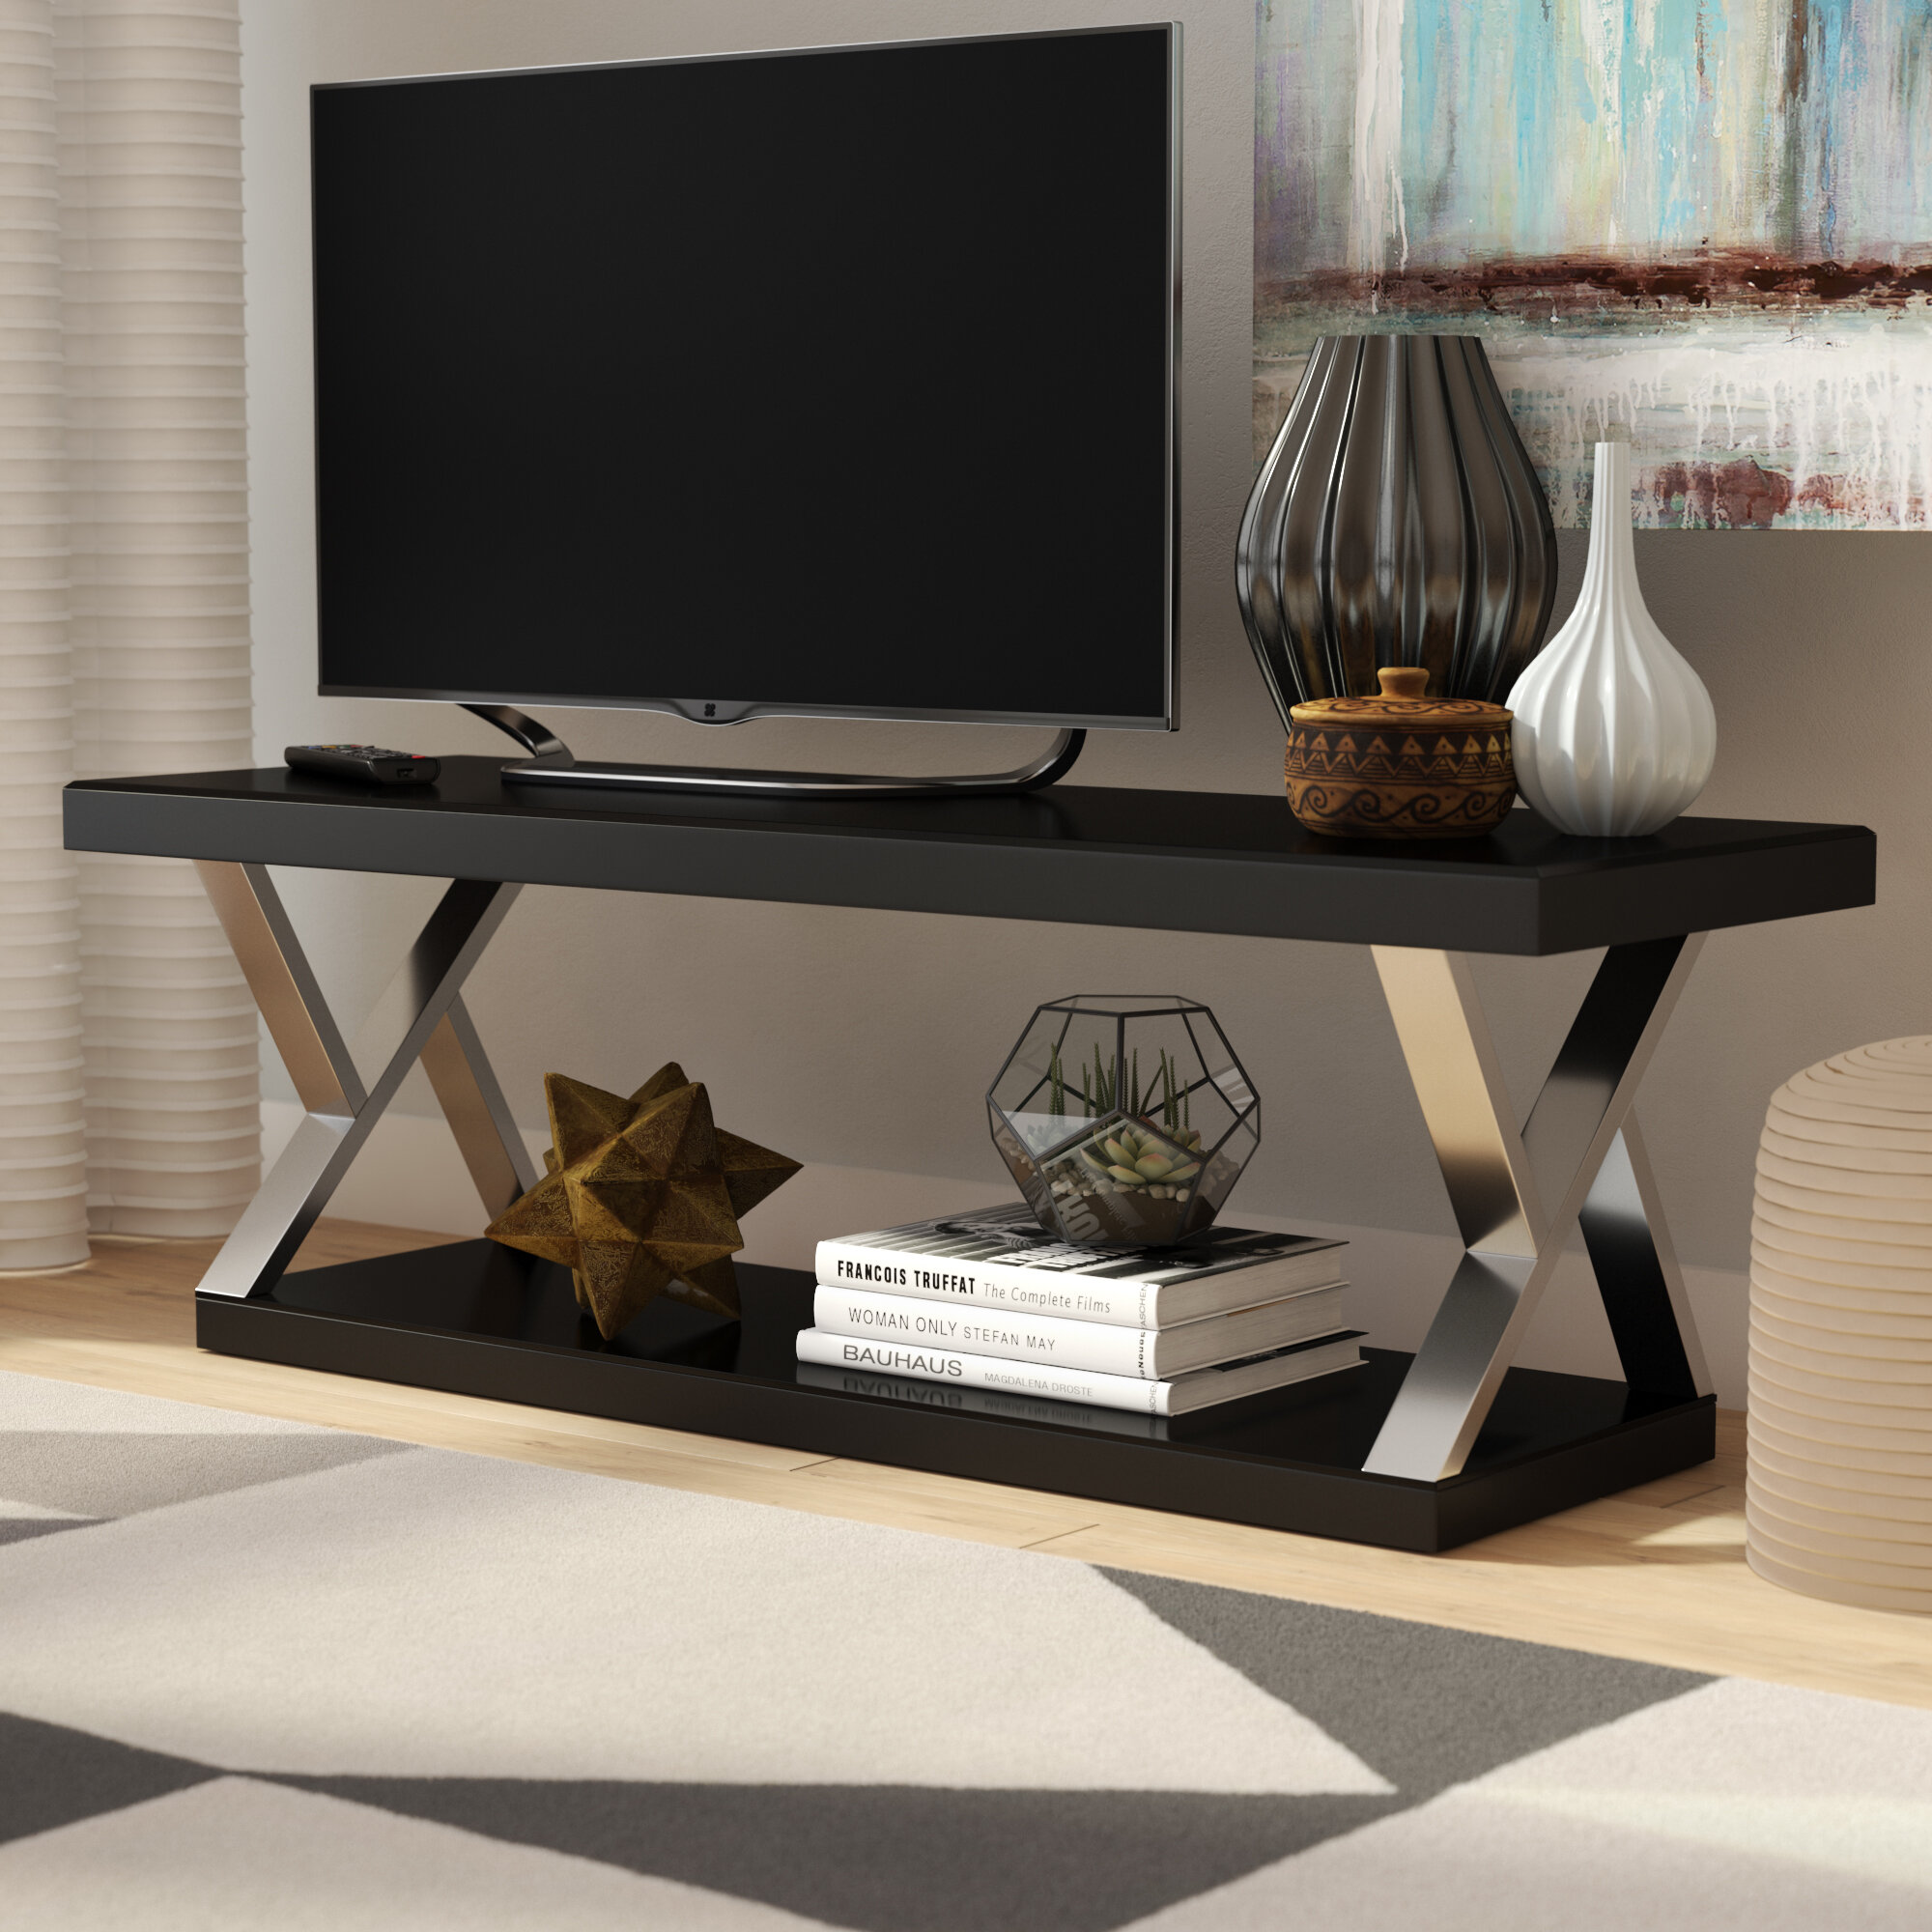 Ivy Bronx Elmer Double V Design Modern Tv Stand For Tvs Up To 65 Reviews Wayfair